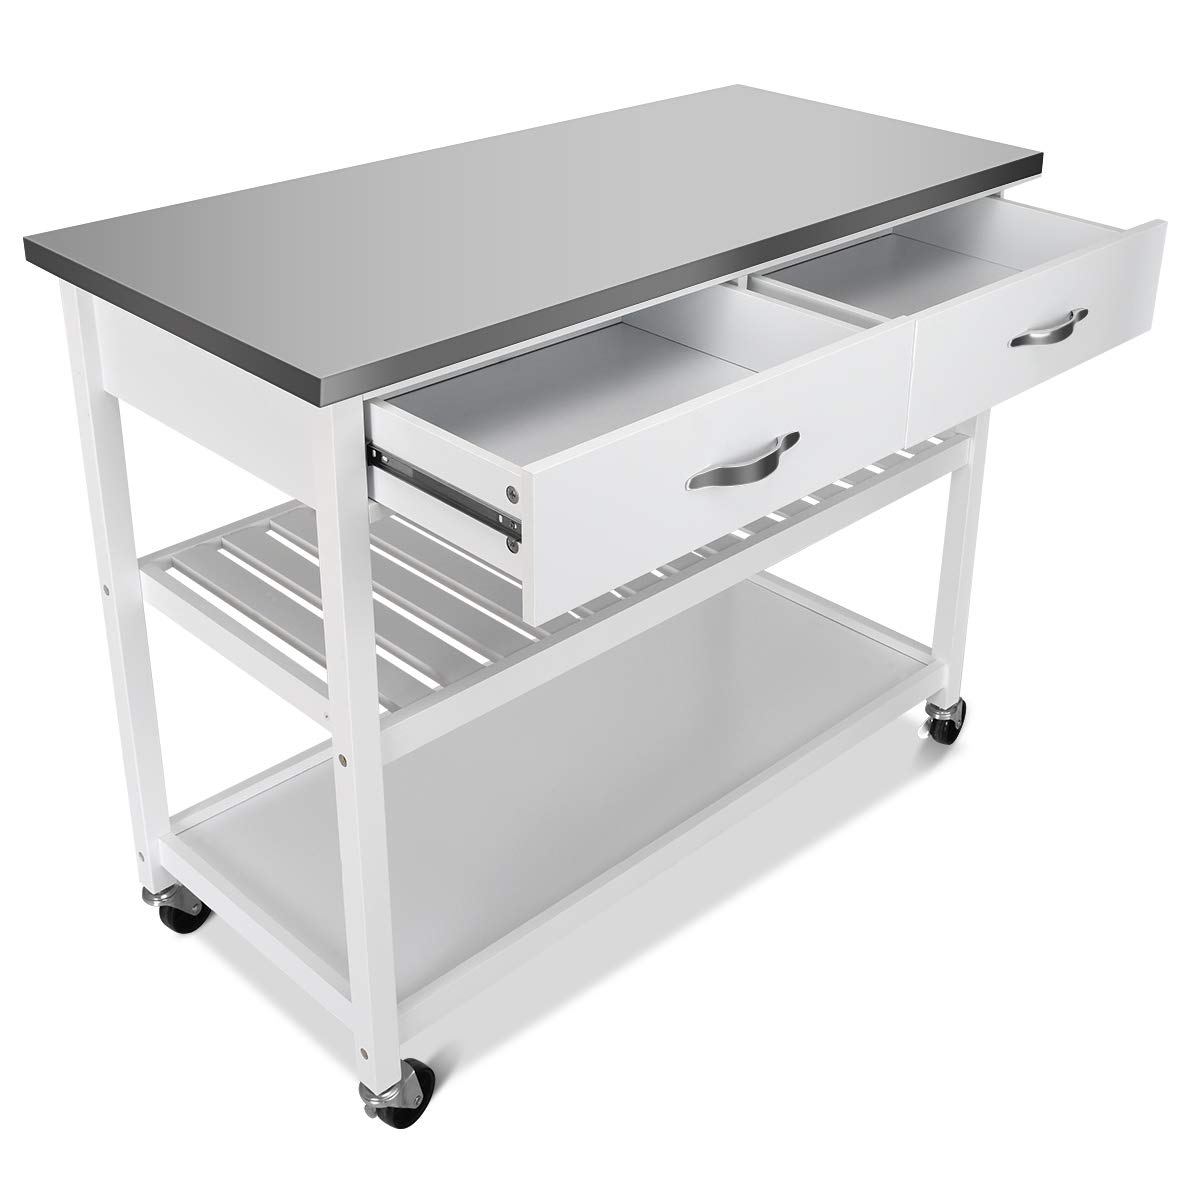 Giantex Kitchen Trolley Cart Rolling Island Cart Serving Cart Large Storage with Stainless Steel Countertop, Lockable Wheels, 2 Drawers and Shelf Utility Cart for Home and Restaurant, (White) by Giantex (Image #9)